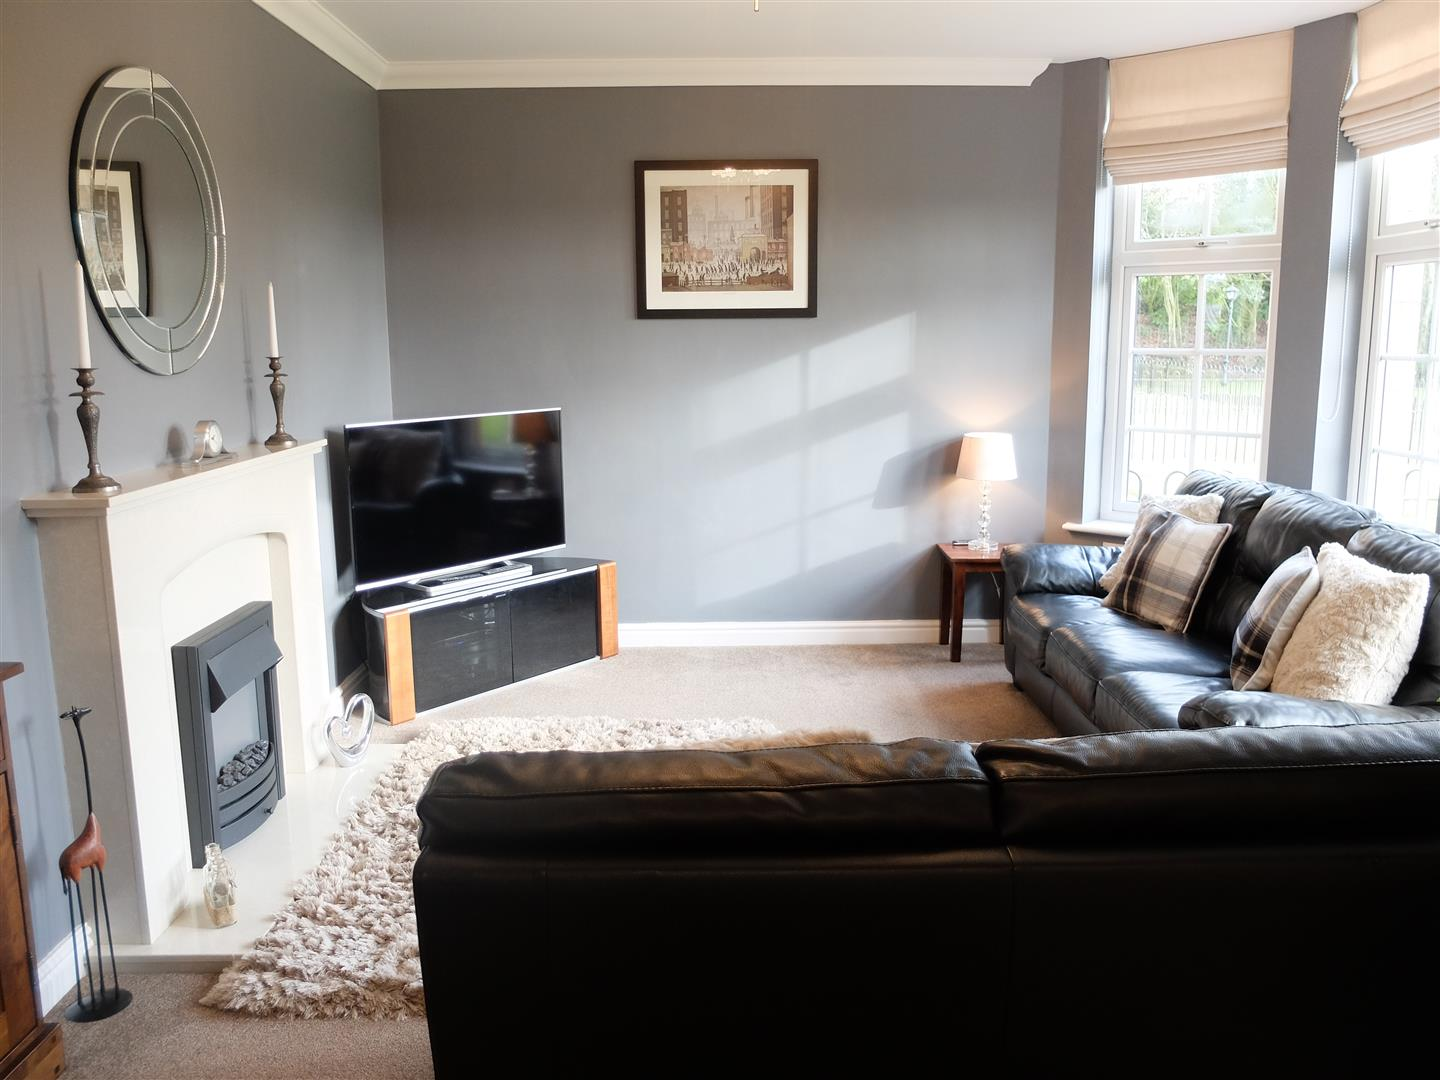 4 Bedrooms House For Sale 5 Oval Court Carlisle 200,000